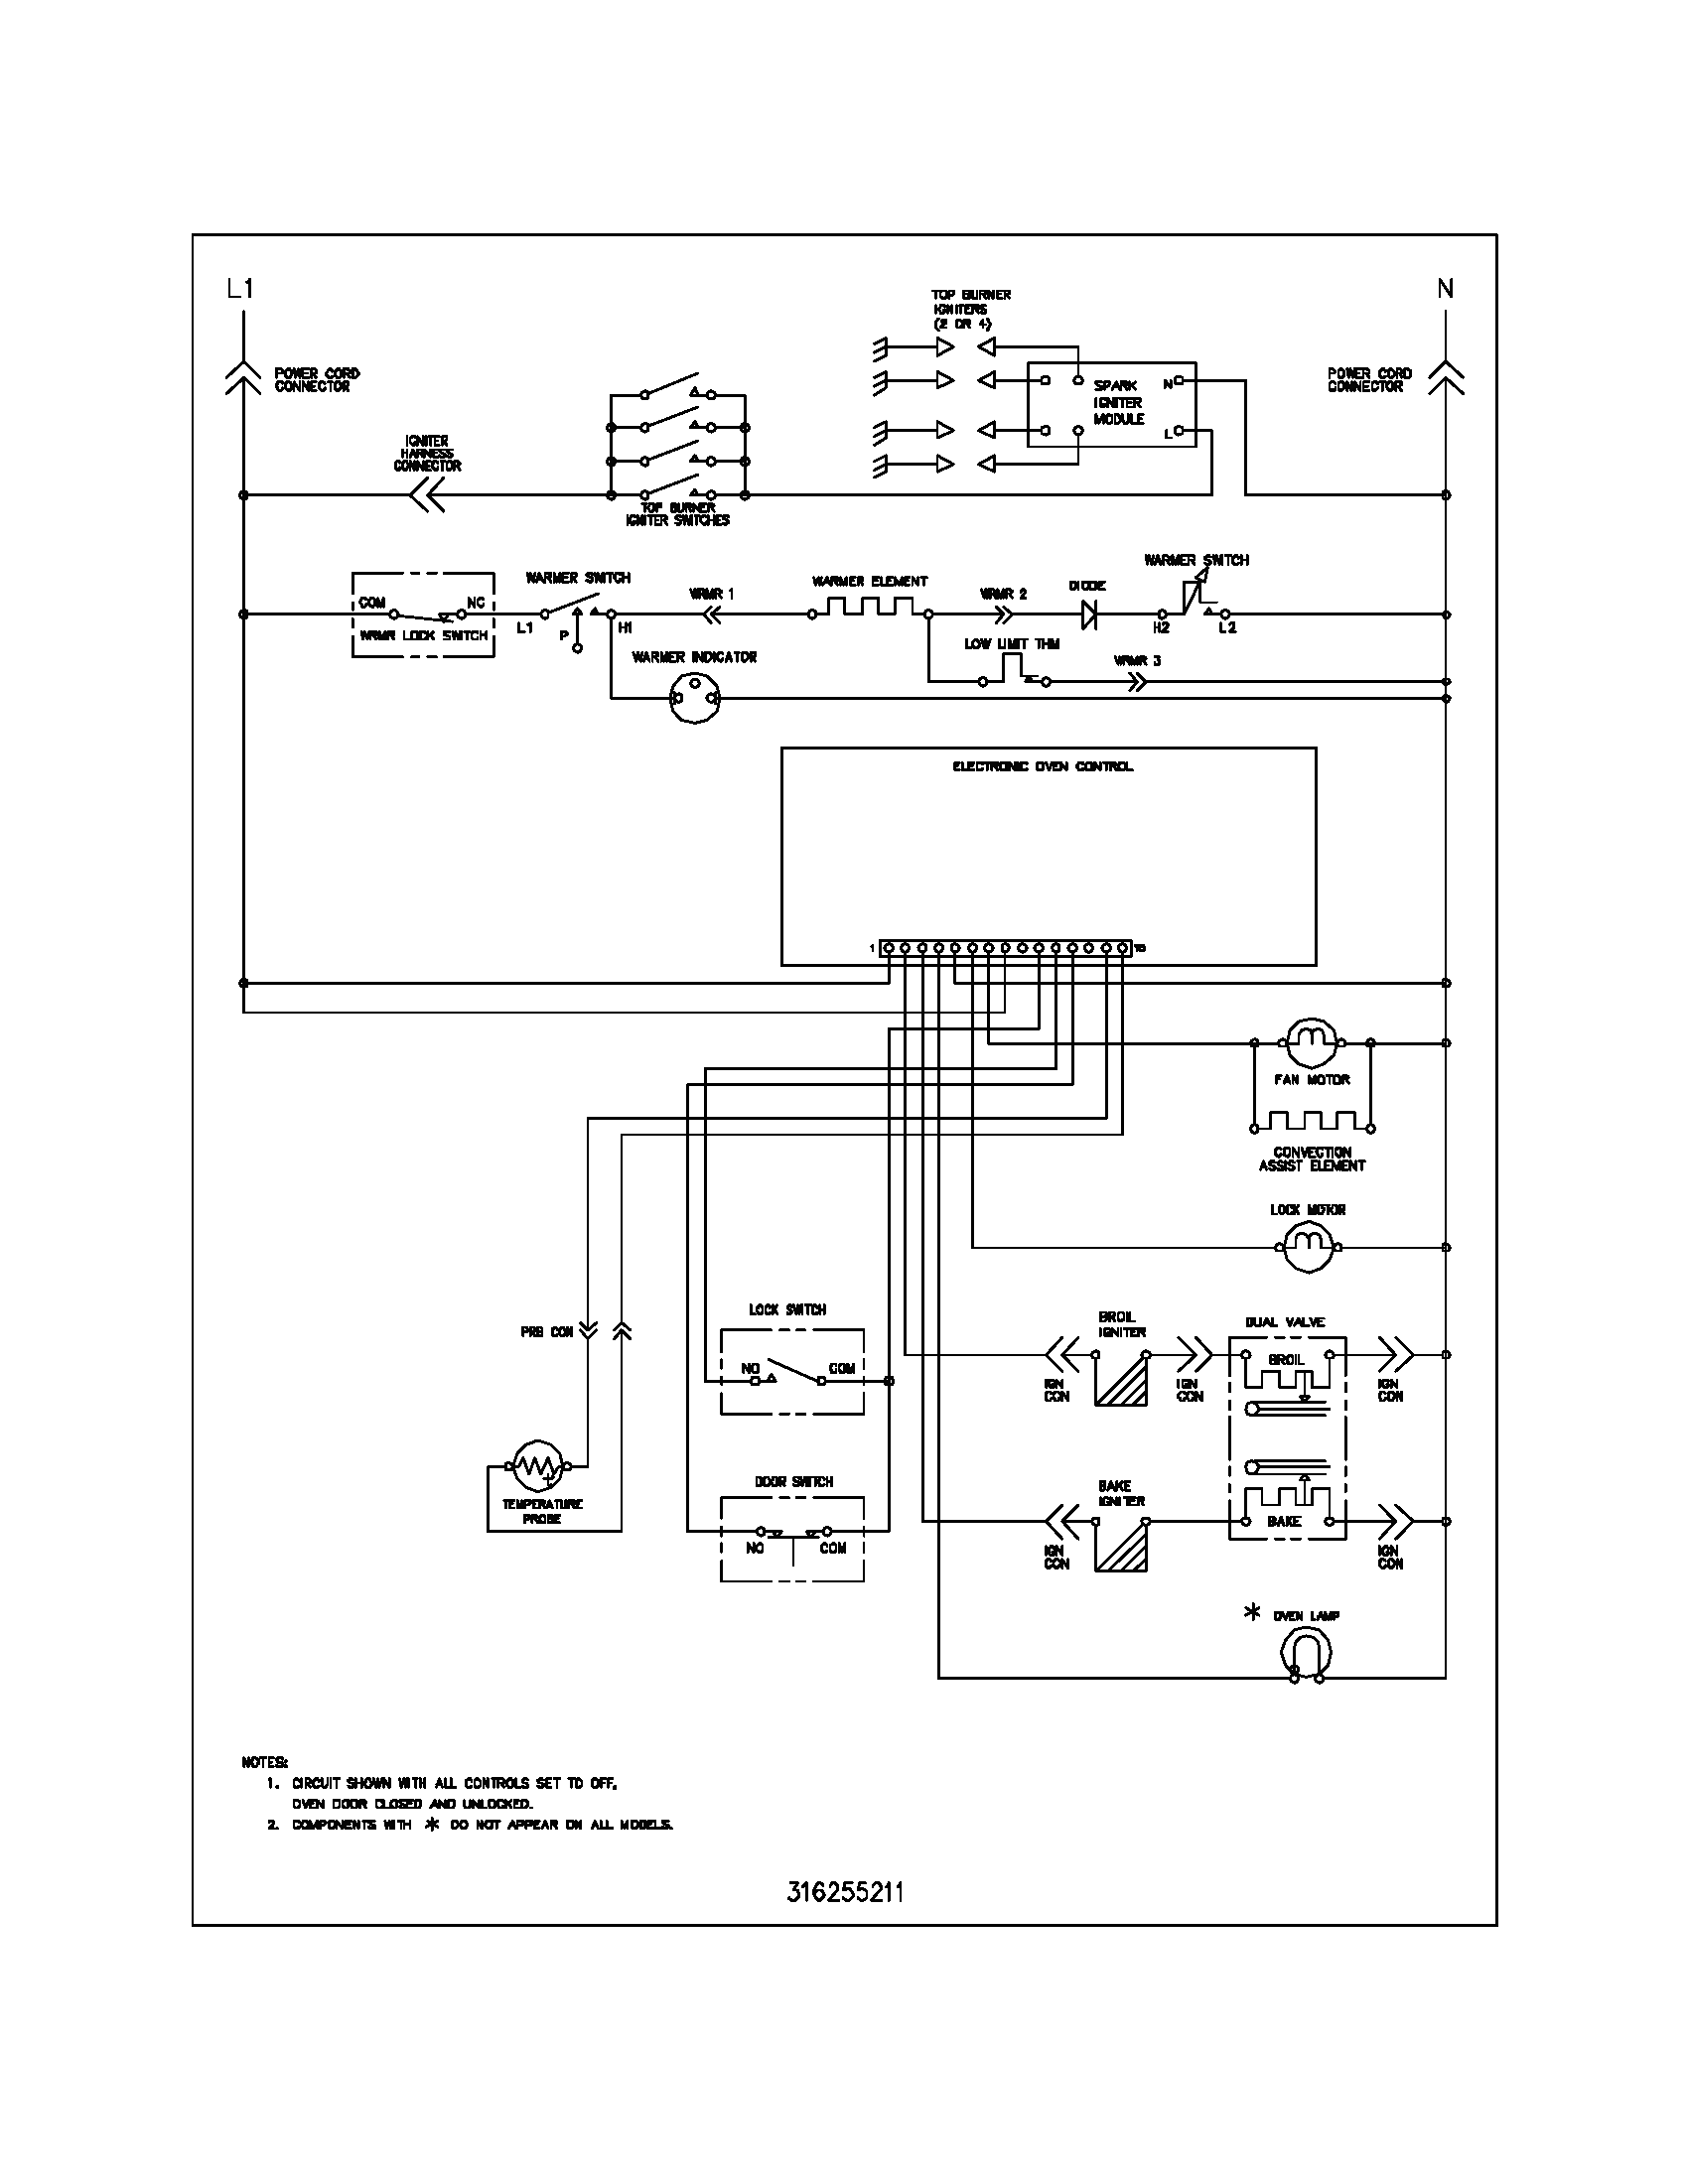 small resolution of general electric furnace wiring diagram wiring diagrams konsult ge furnace wiring diagram wiring diagram query furnace